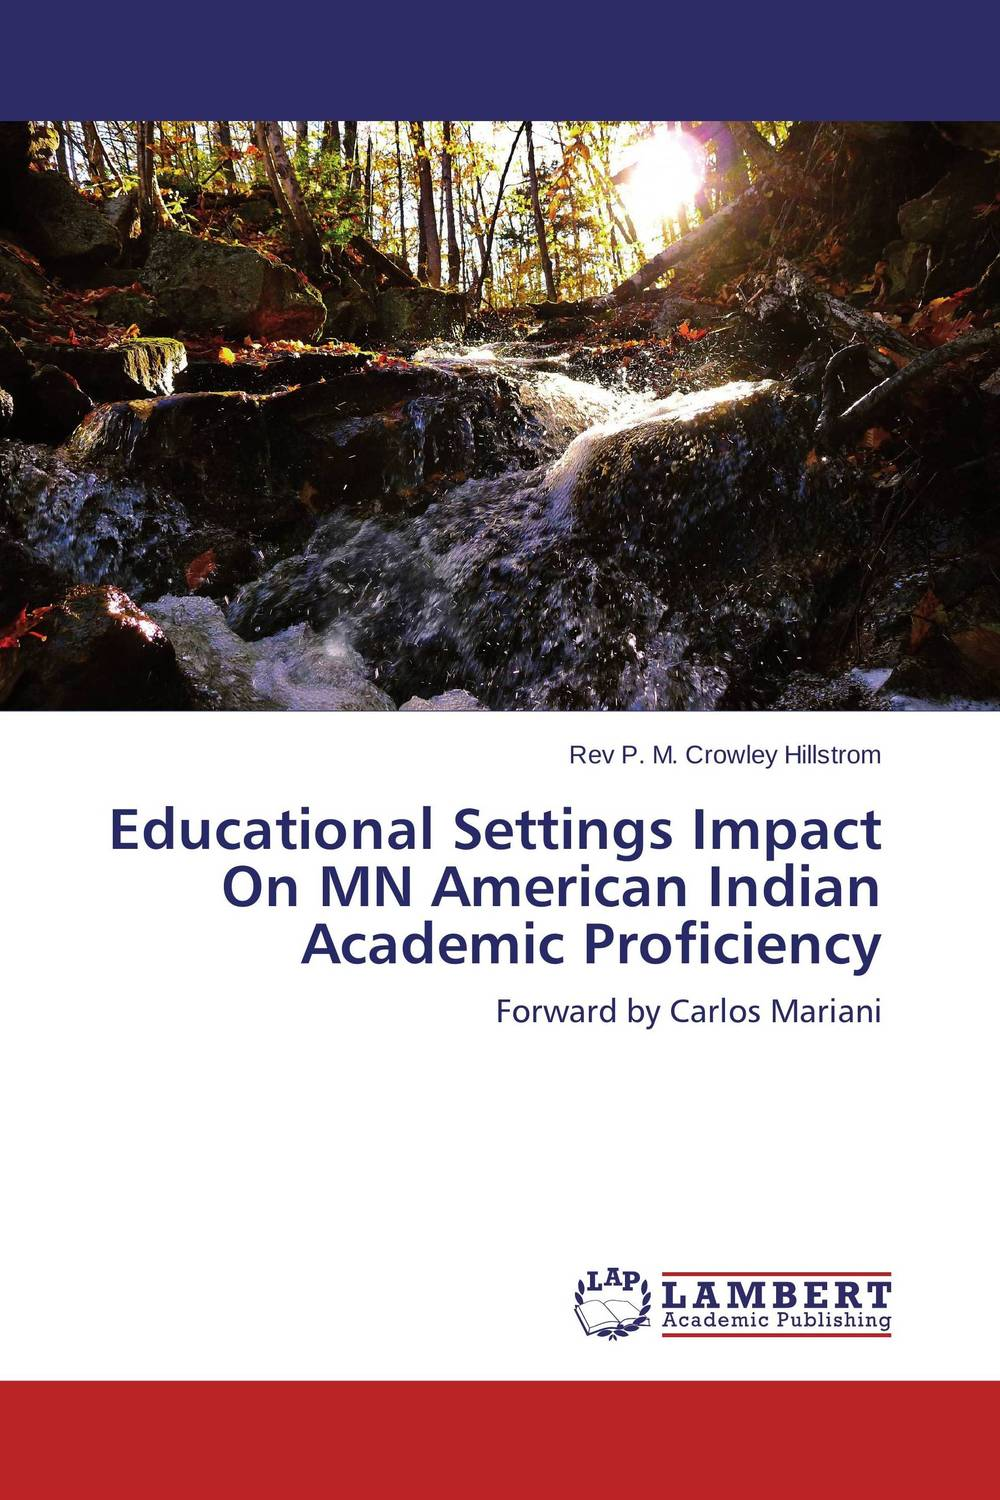 Educational Settings Impact On MN American Indian Academic Proficiency